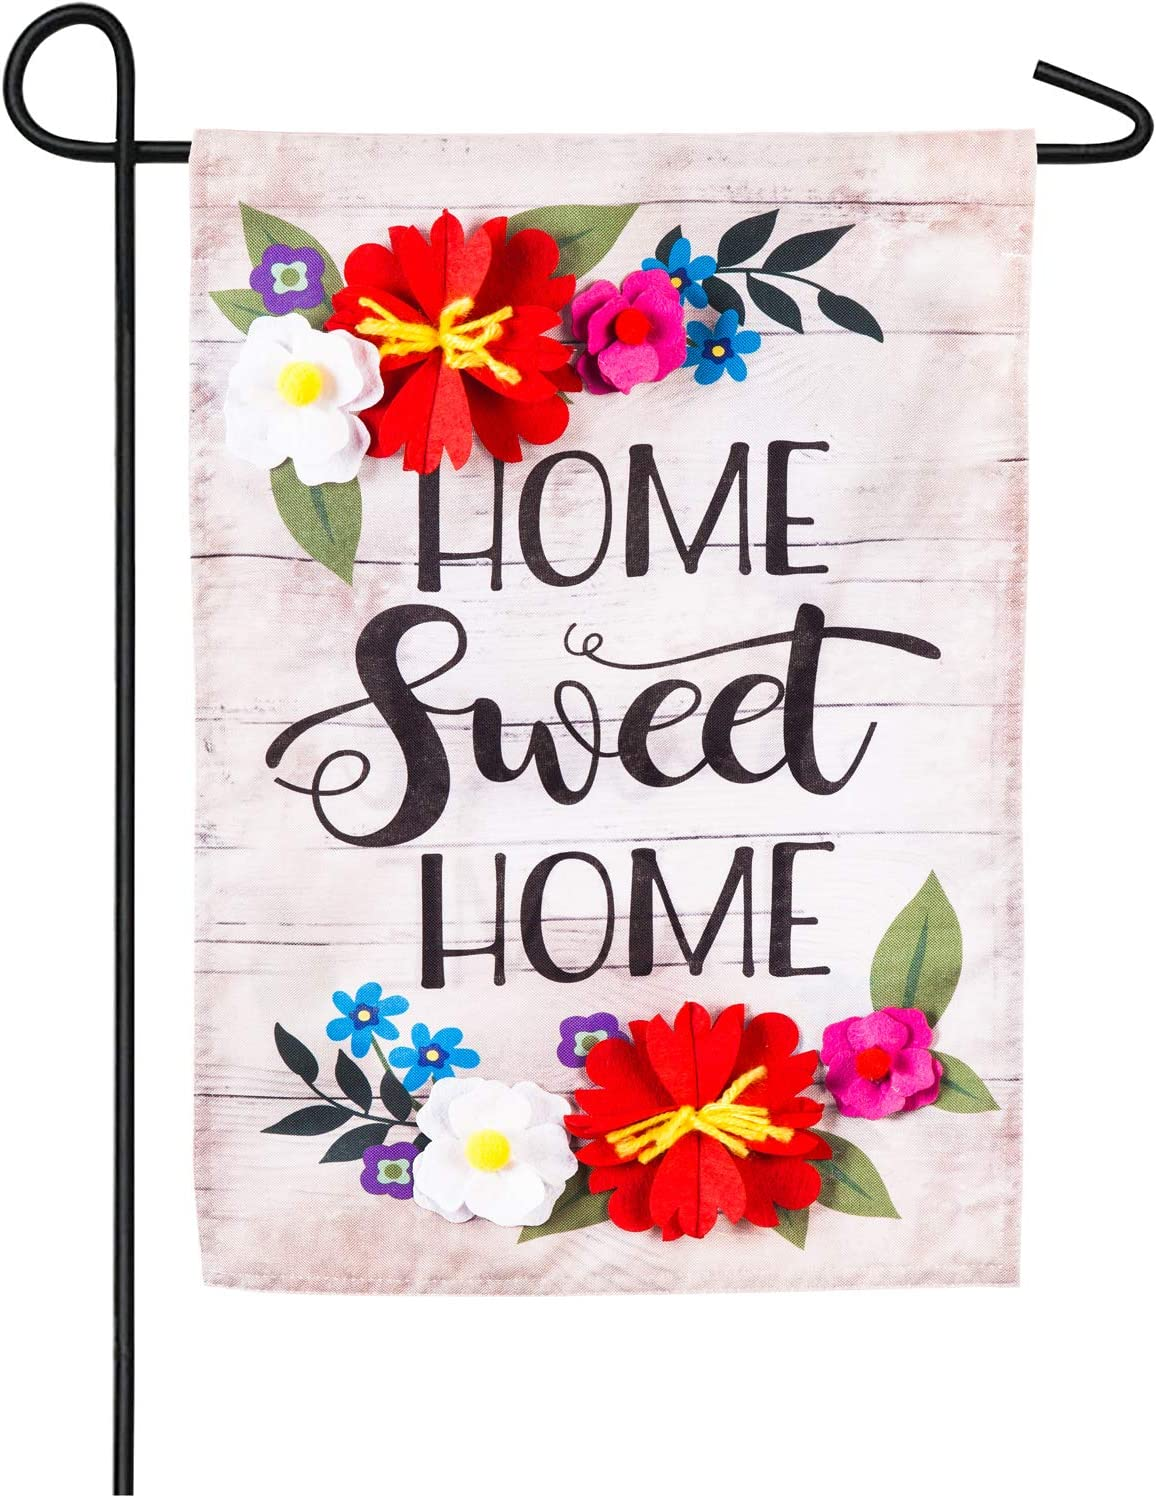 Evergreen Flag Floral Home Sweet Home Linen Garden Flag - 12.5 x 18 Inches Outdoor Decor for Homes and Gardens